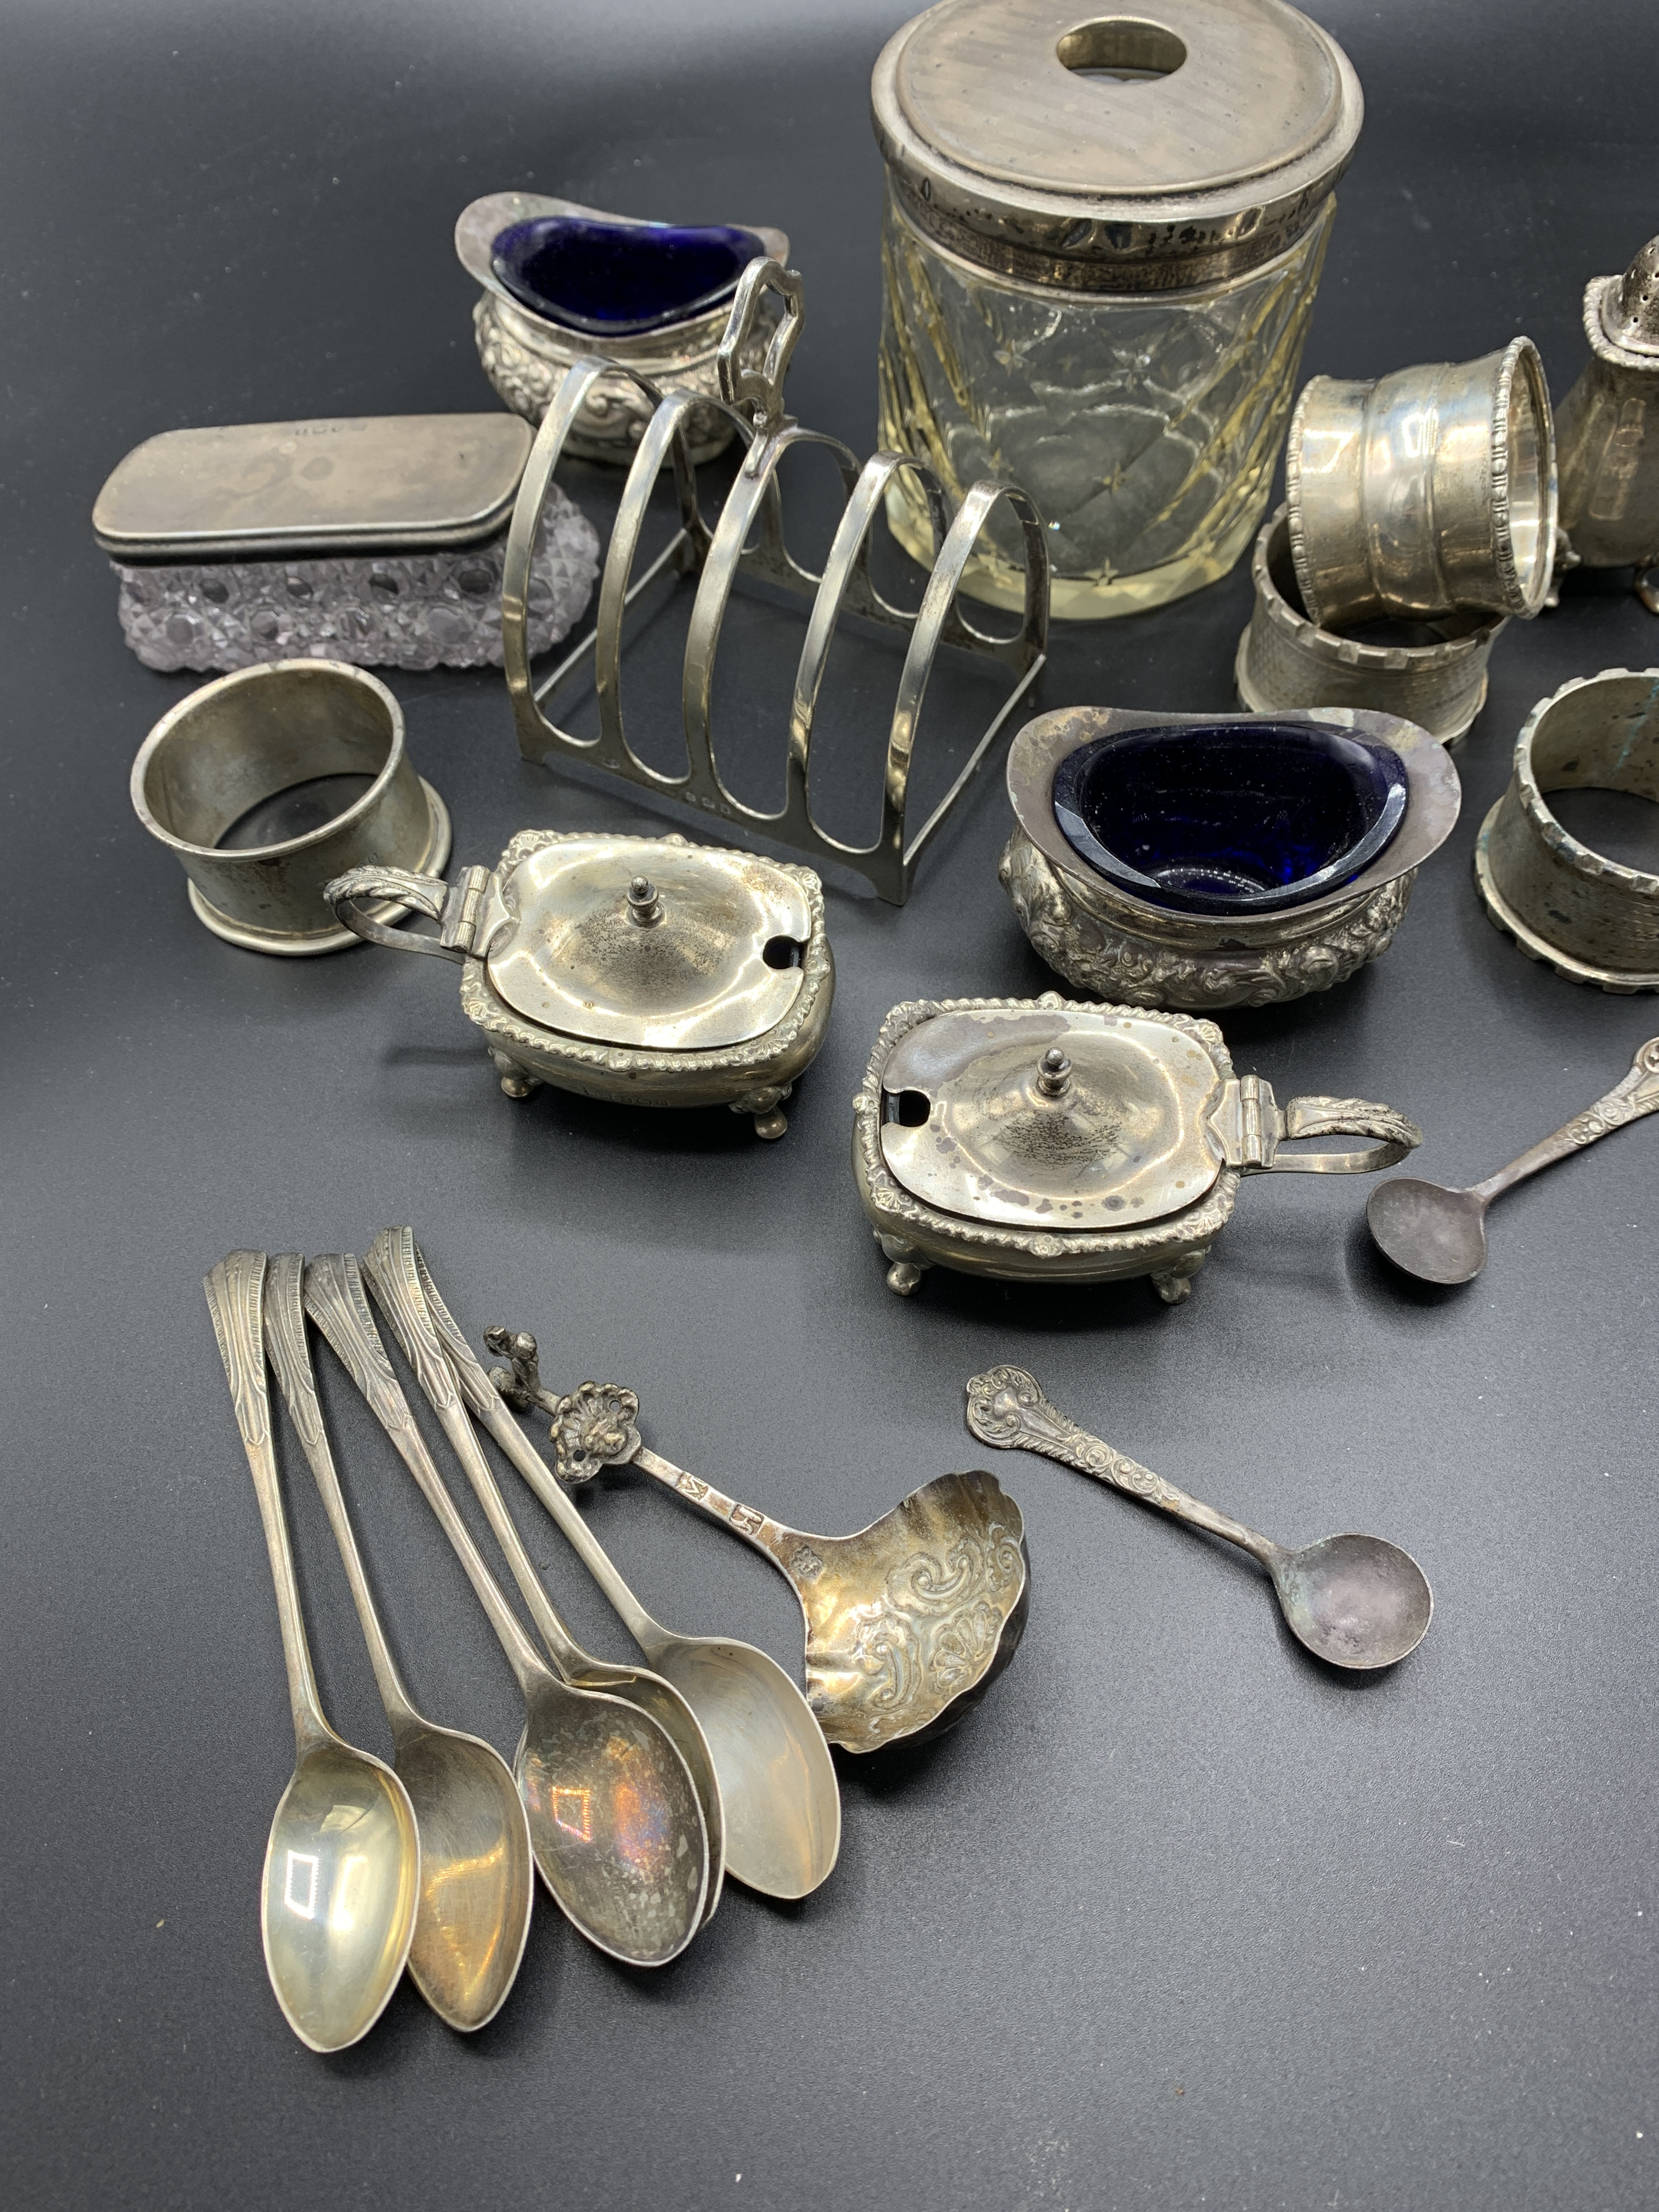 Silver cruets and other silver item